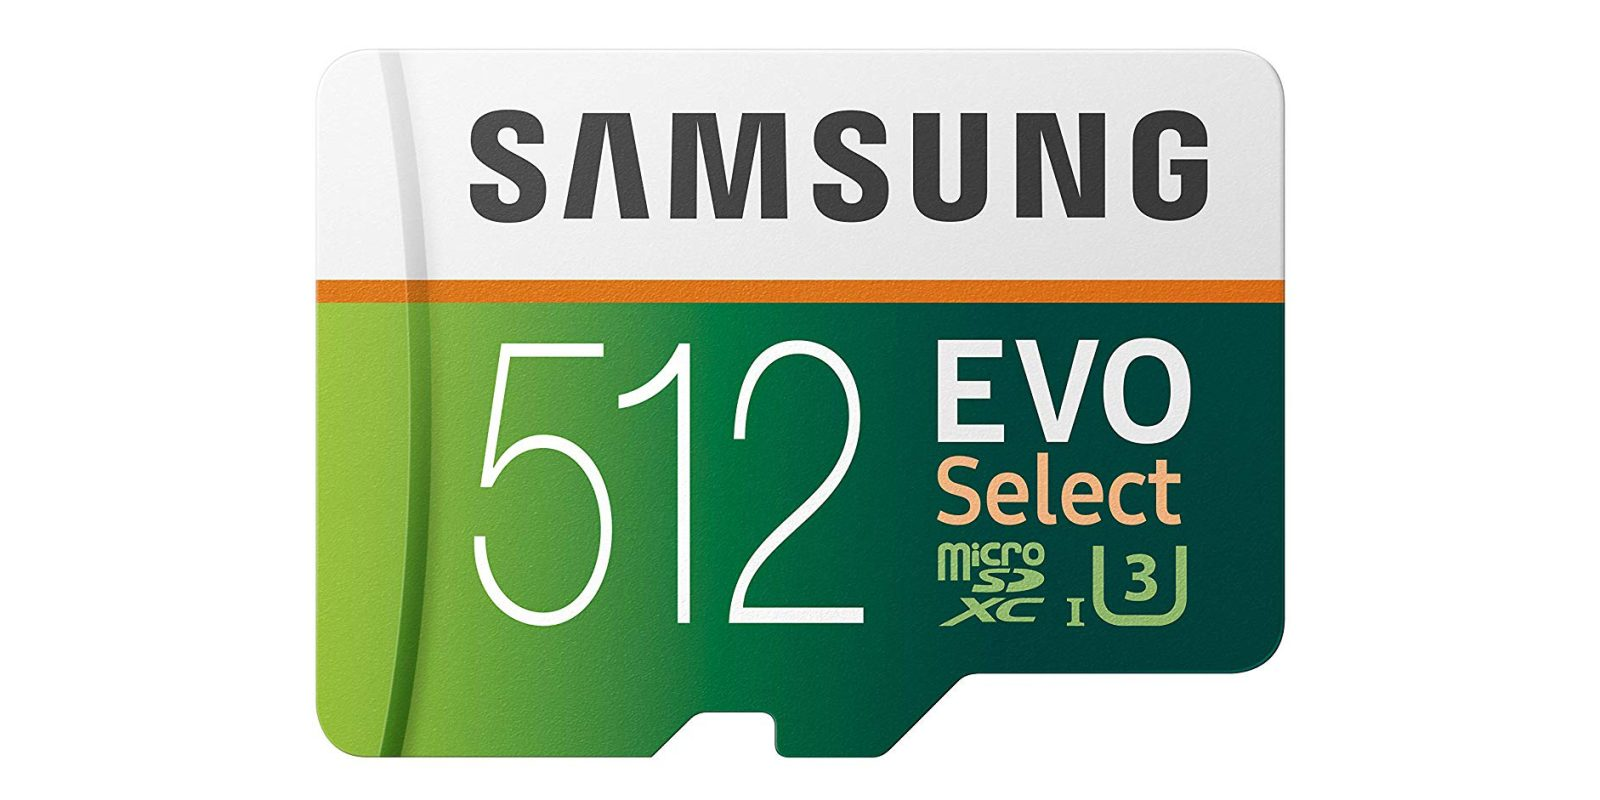 Samsung's 512GB EVO microSD card hits Amazon all-time low at $89 shipped